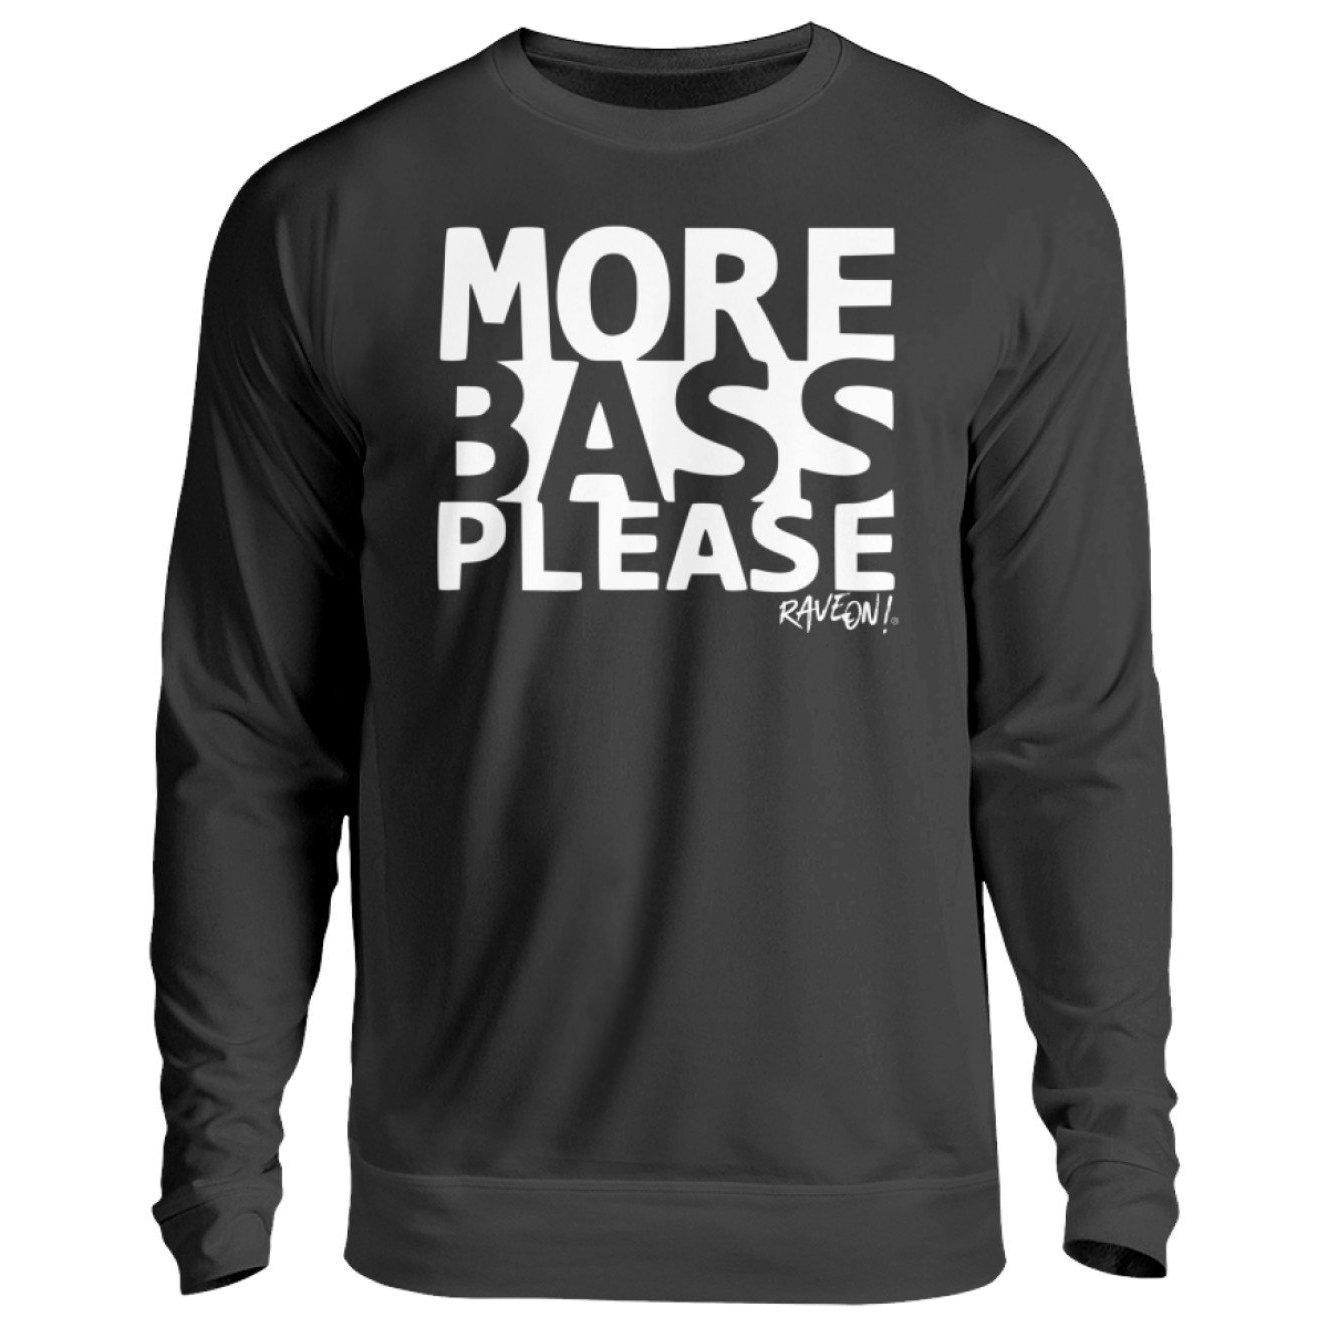 MORE BASS PLEASE! - Rave On!® - Unisex Pullover Unisex Sweatshirt Jet Black / S - Rave On!® der Club & Techno Szene Shop für Coole Junge Mode Streetwear Style & Fashion Outfits + Sexy Festival 420 Stuff